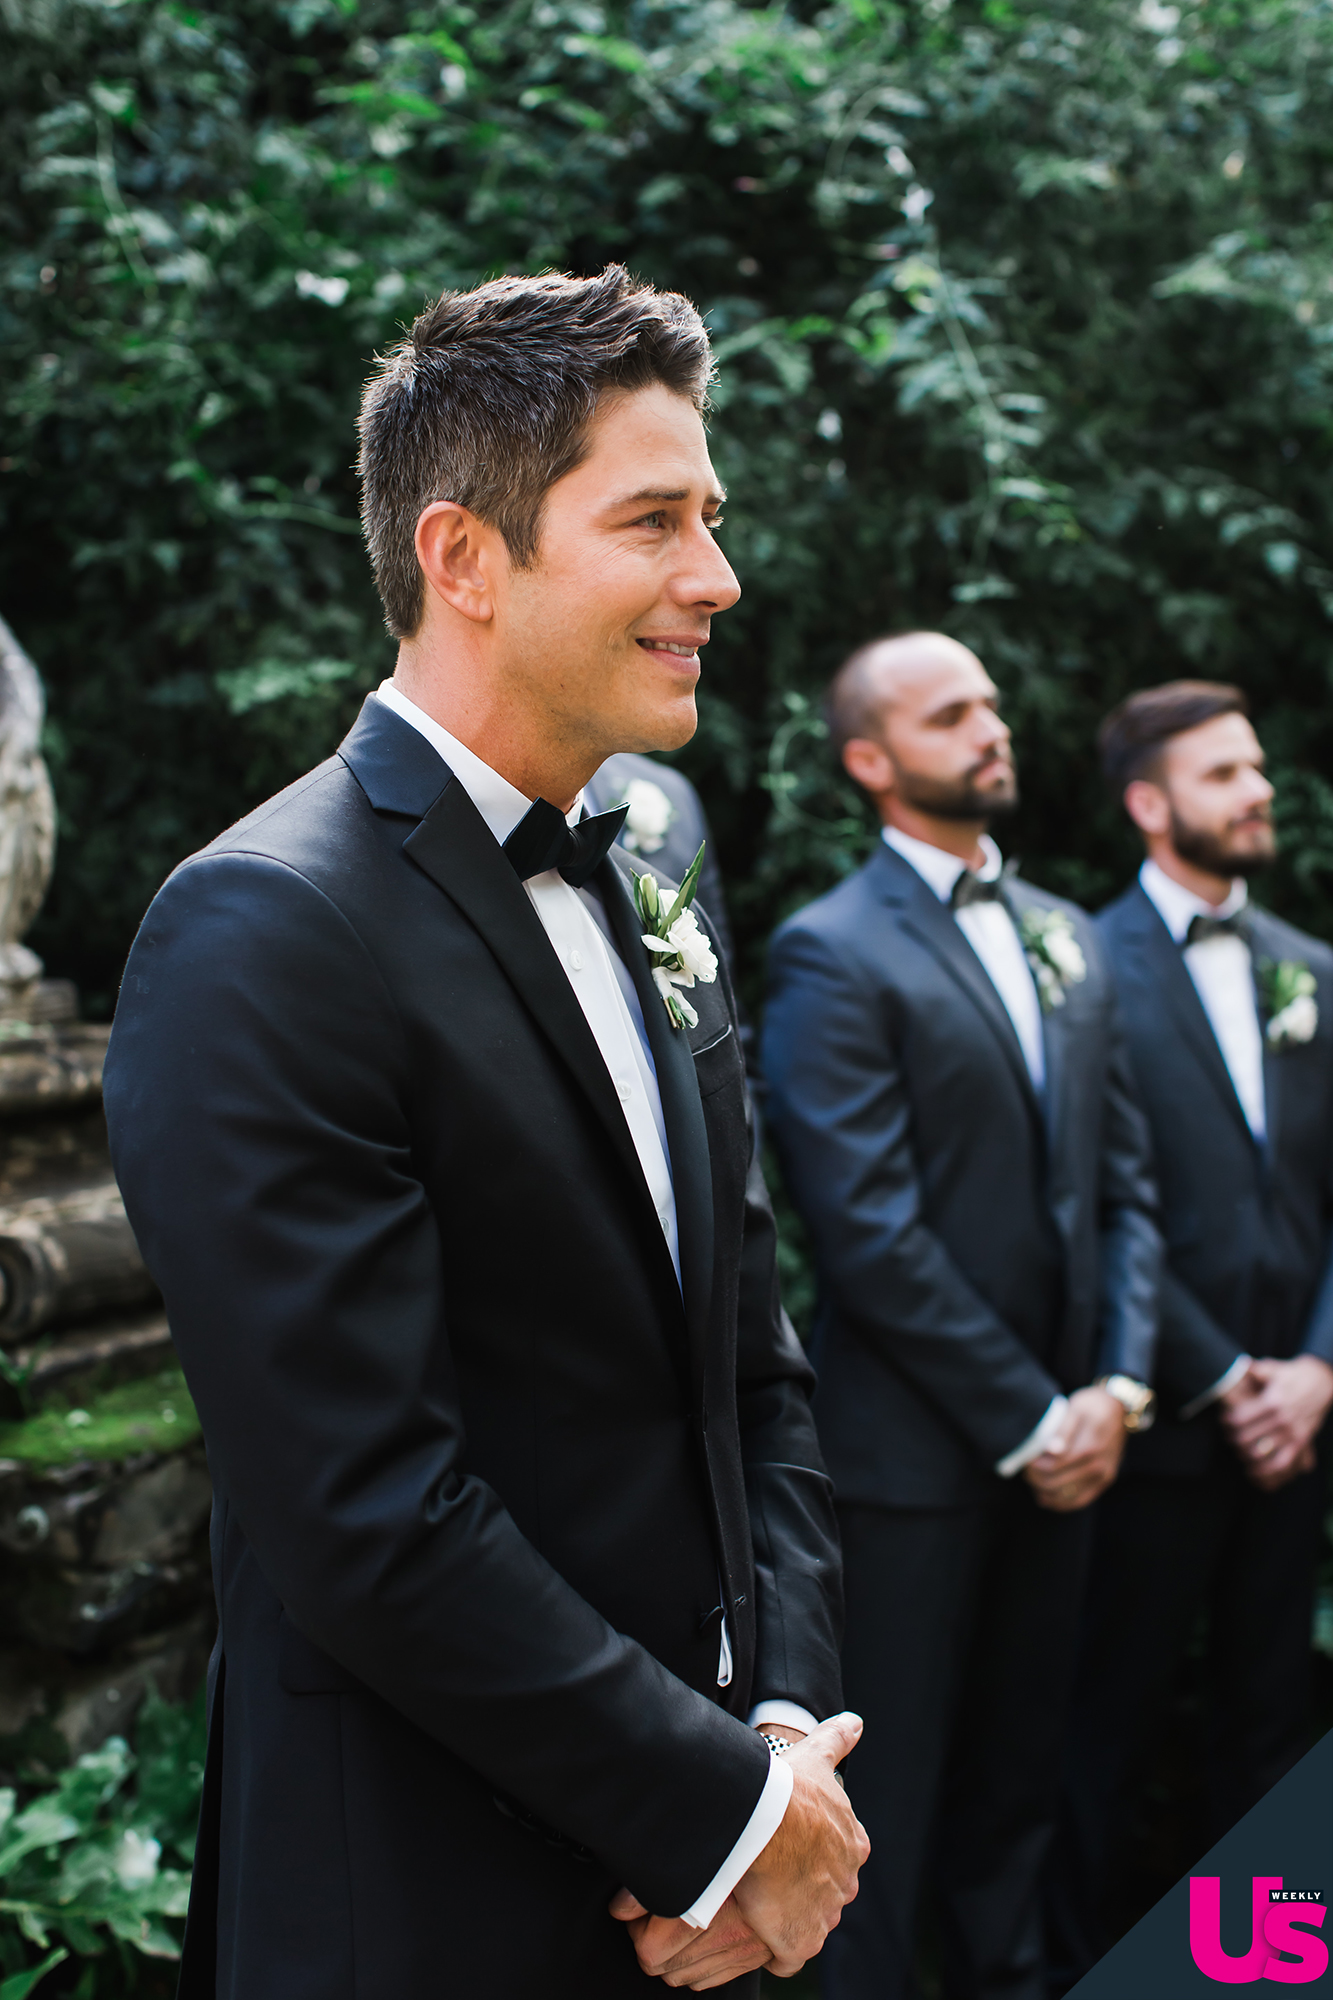 Arie-Luyendyk-Jr. -and-Lauren-Burnham-Wedding - The sales executive originally wanted to do a first look and the photos before the ceremony, but Luyendyk Jr. wanted the first time he saw his bride to be when she walked down the aisle.